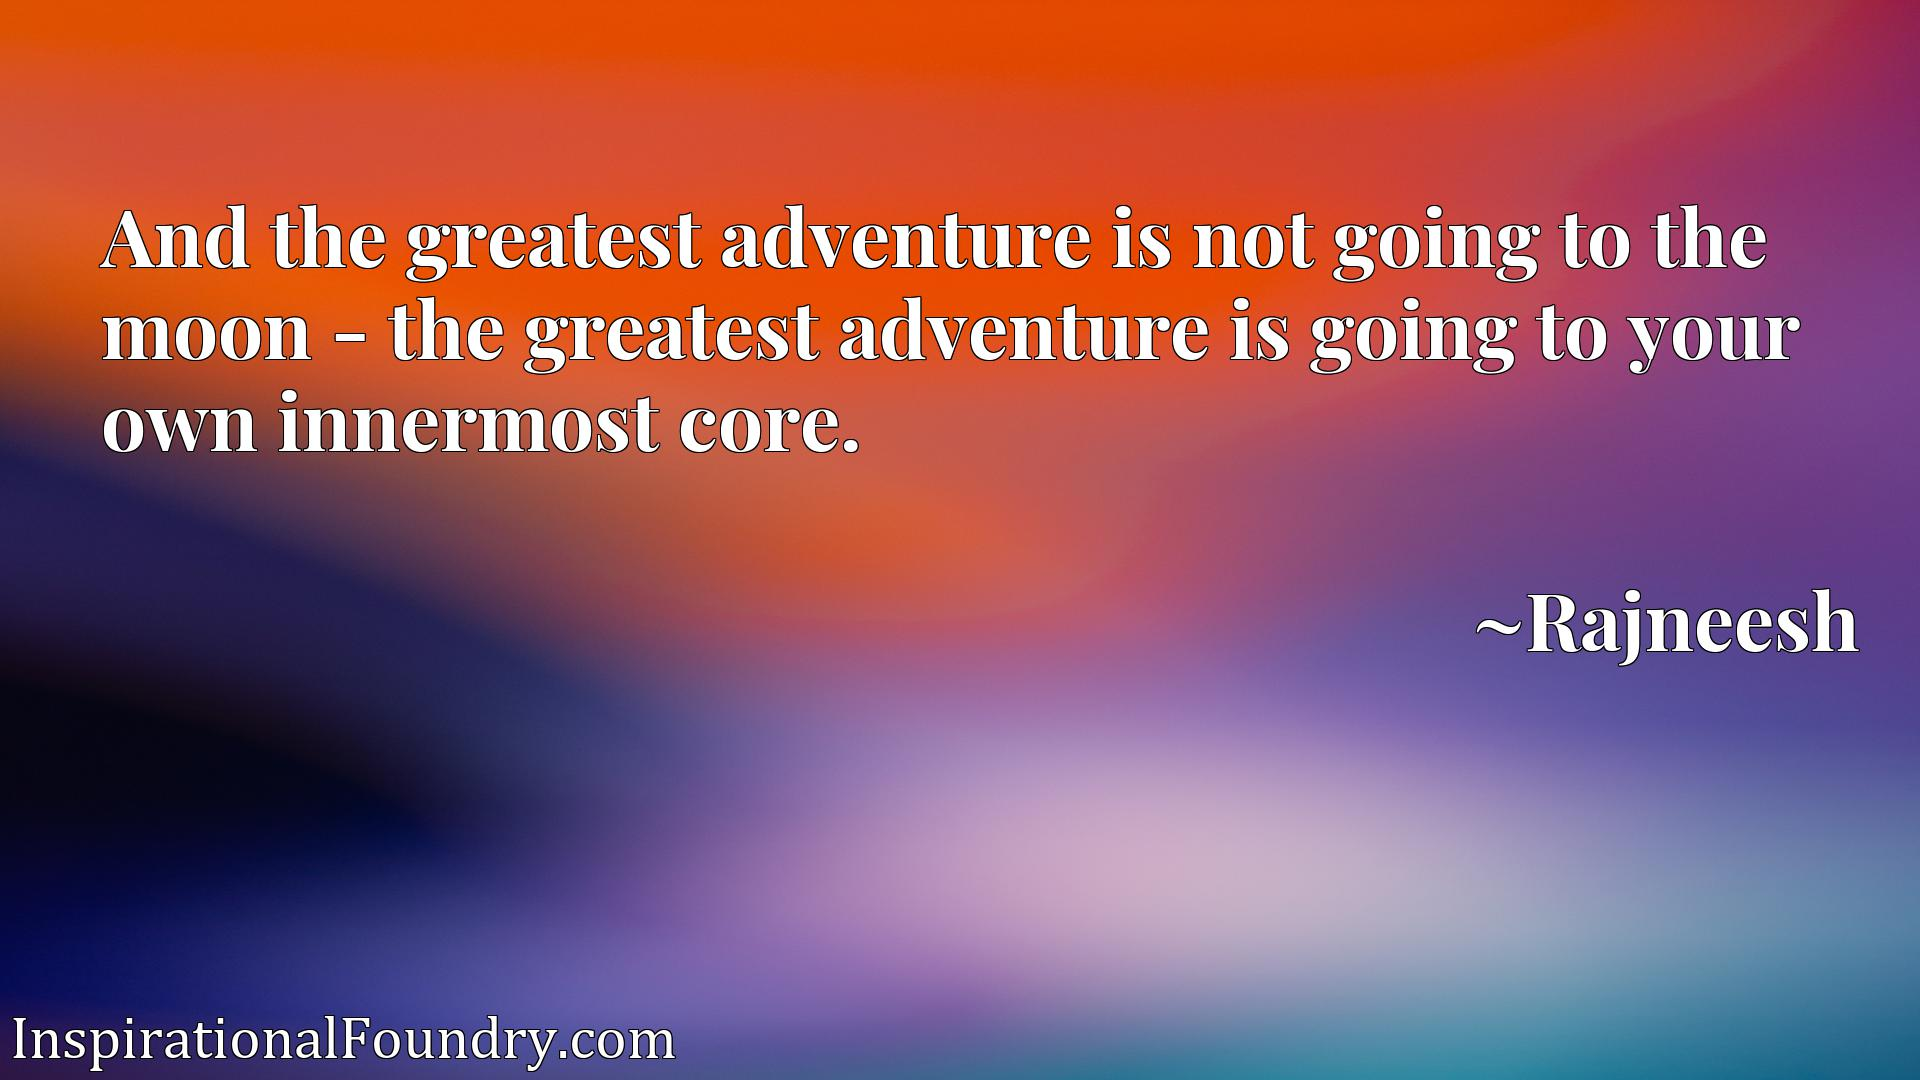 And the greatest adventure is not going to the moon - the greatest adventure is going to your own innermost core.